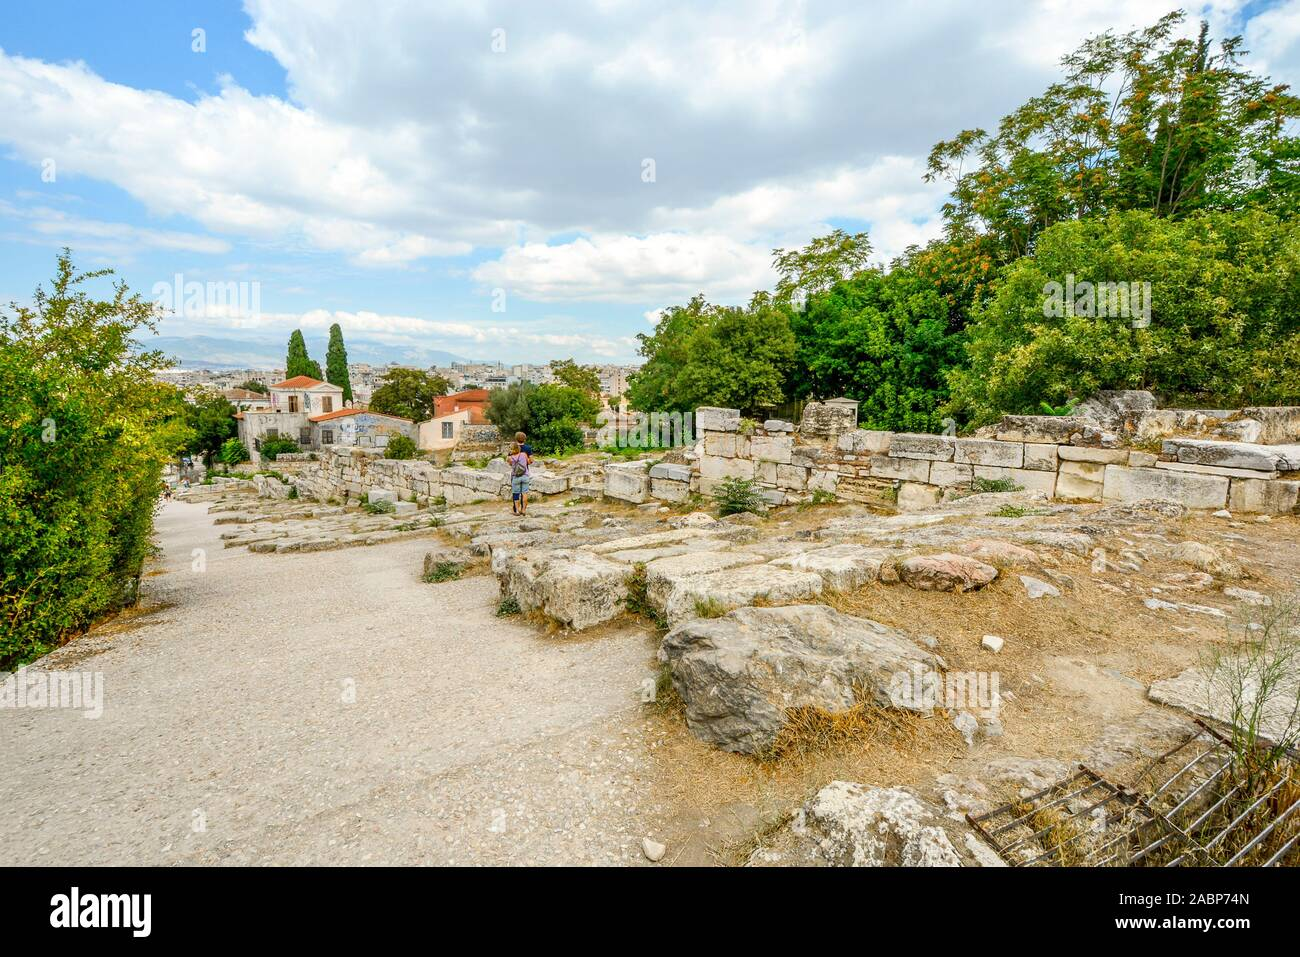 A young couple embraces as they enjoy the view of the city of Athens Greece from the ancient Agora at the base of the Acropolis Hill in the Plaka dist Stock Photo